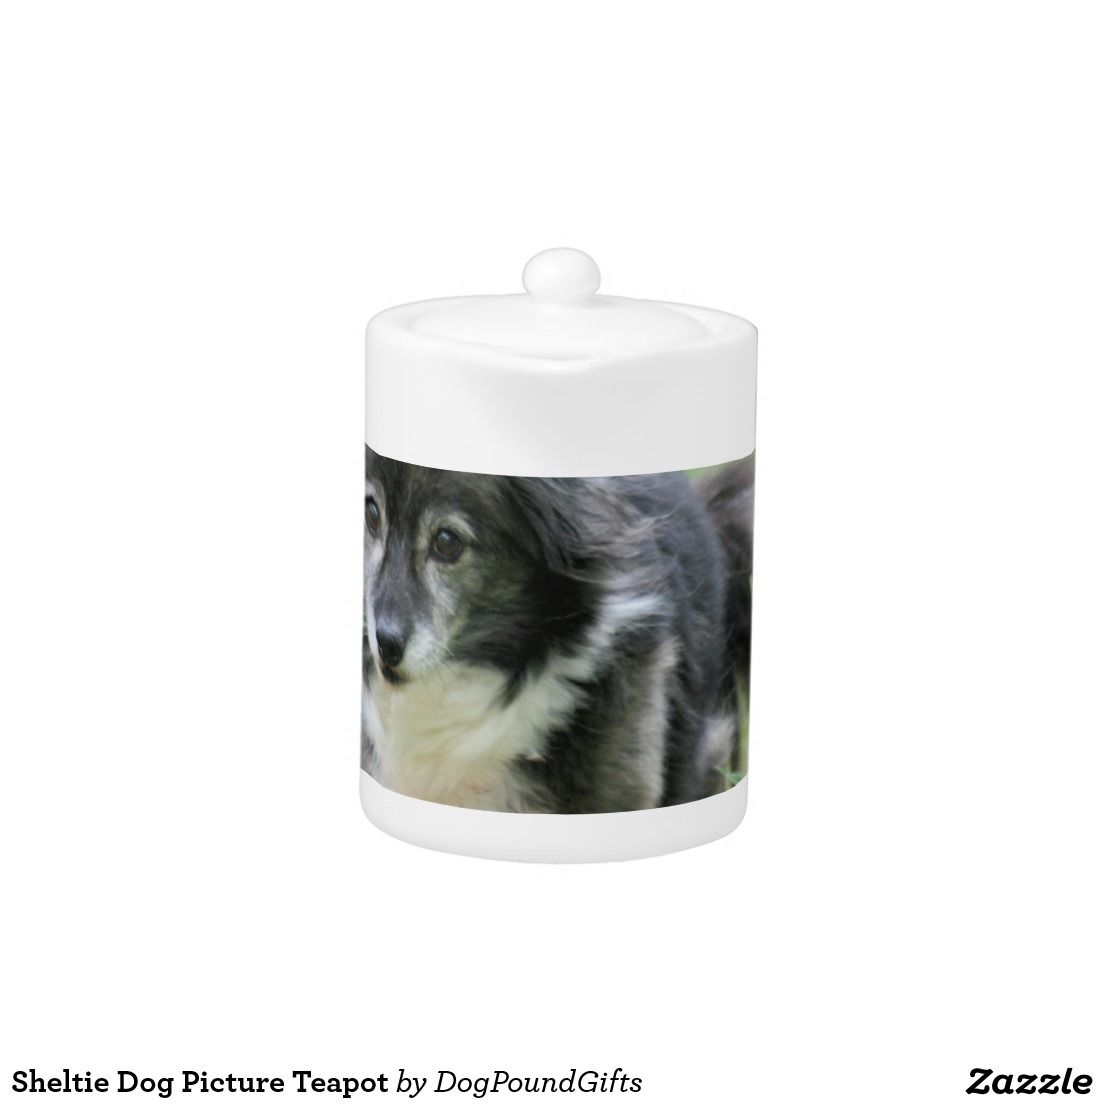 Sheltie Dog Picture Teapot